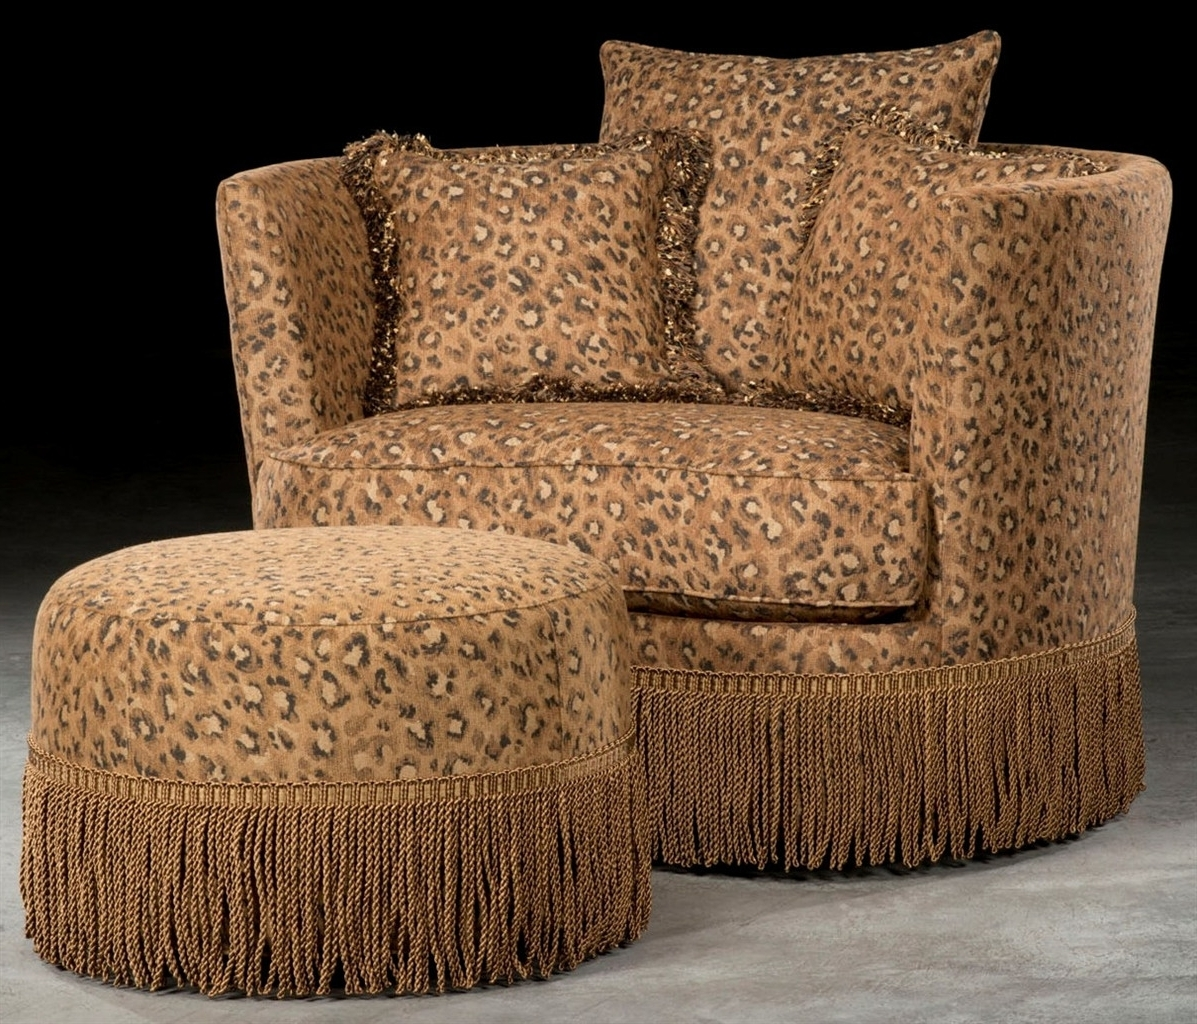 Trendy Zebra Print Chaise Lounge Chairs Inside Animal Print Ottoman Furniture Long Ottoman With Storage Light (View 10 of 15)